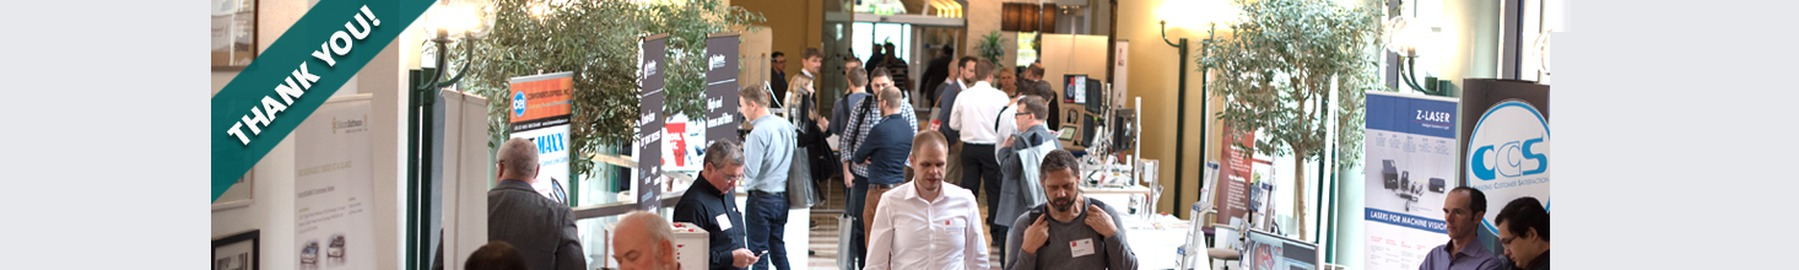 Machine Vision Technology Forum 2017 - Stockholm